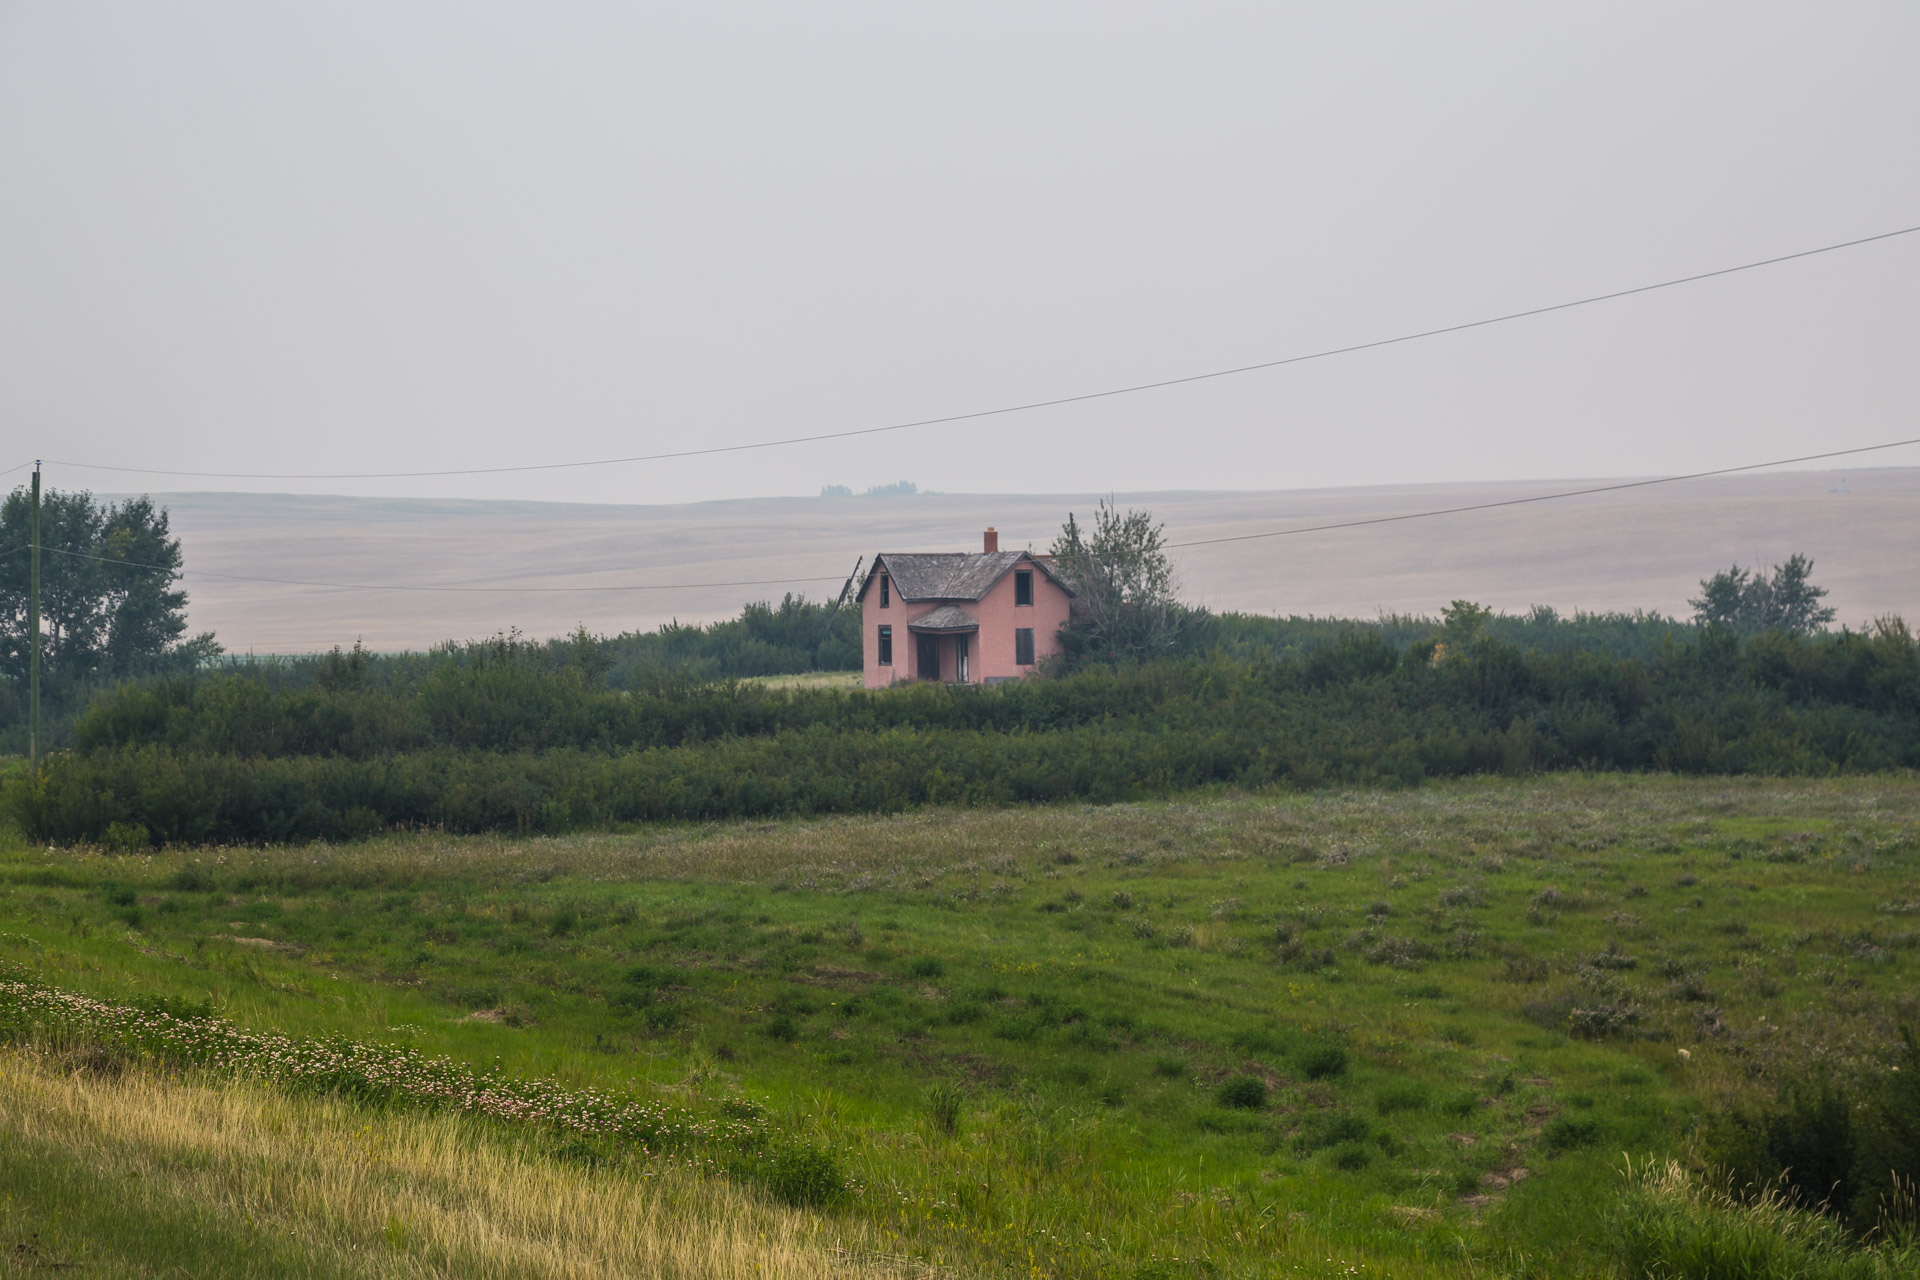 Smokey Pink House (right mid)